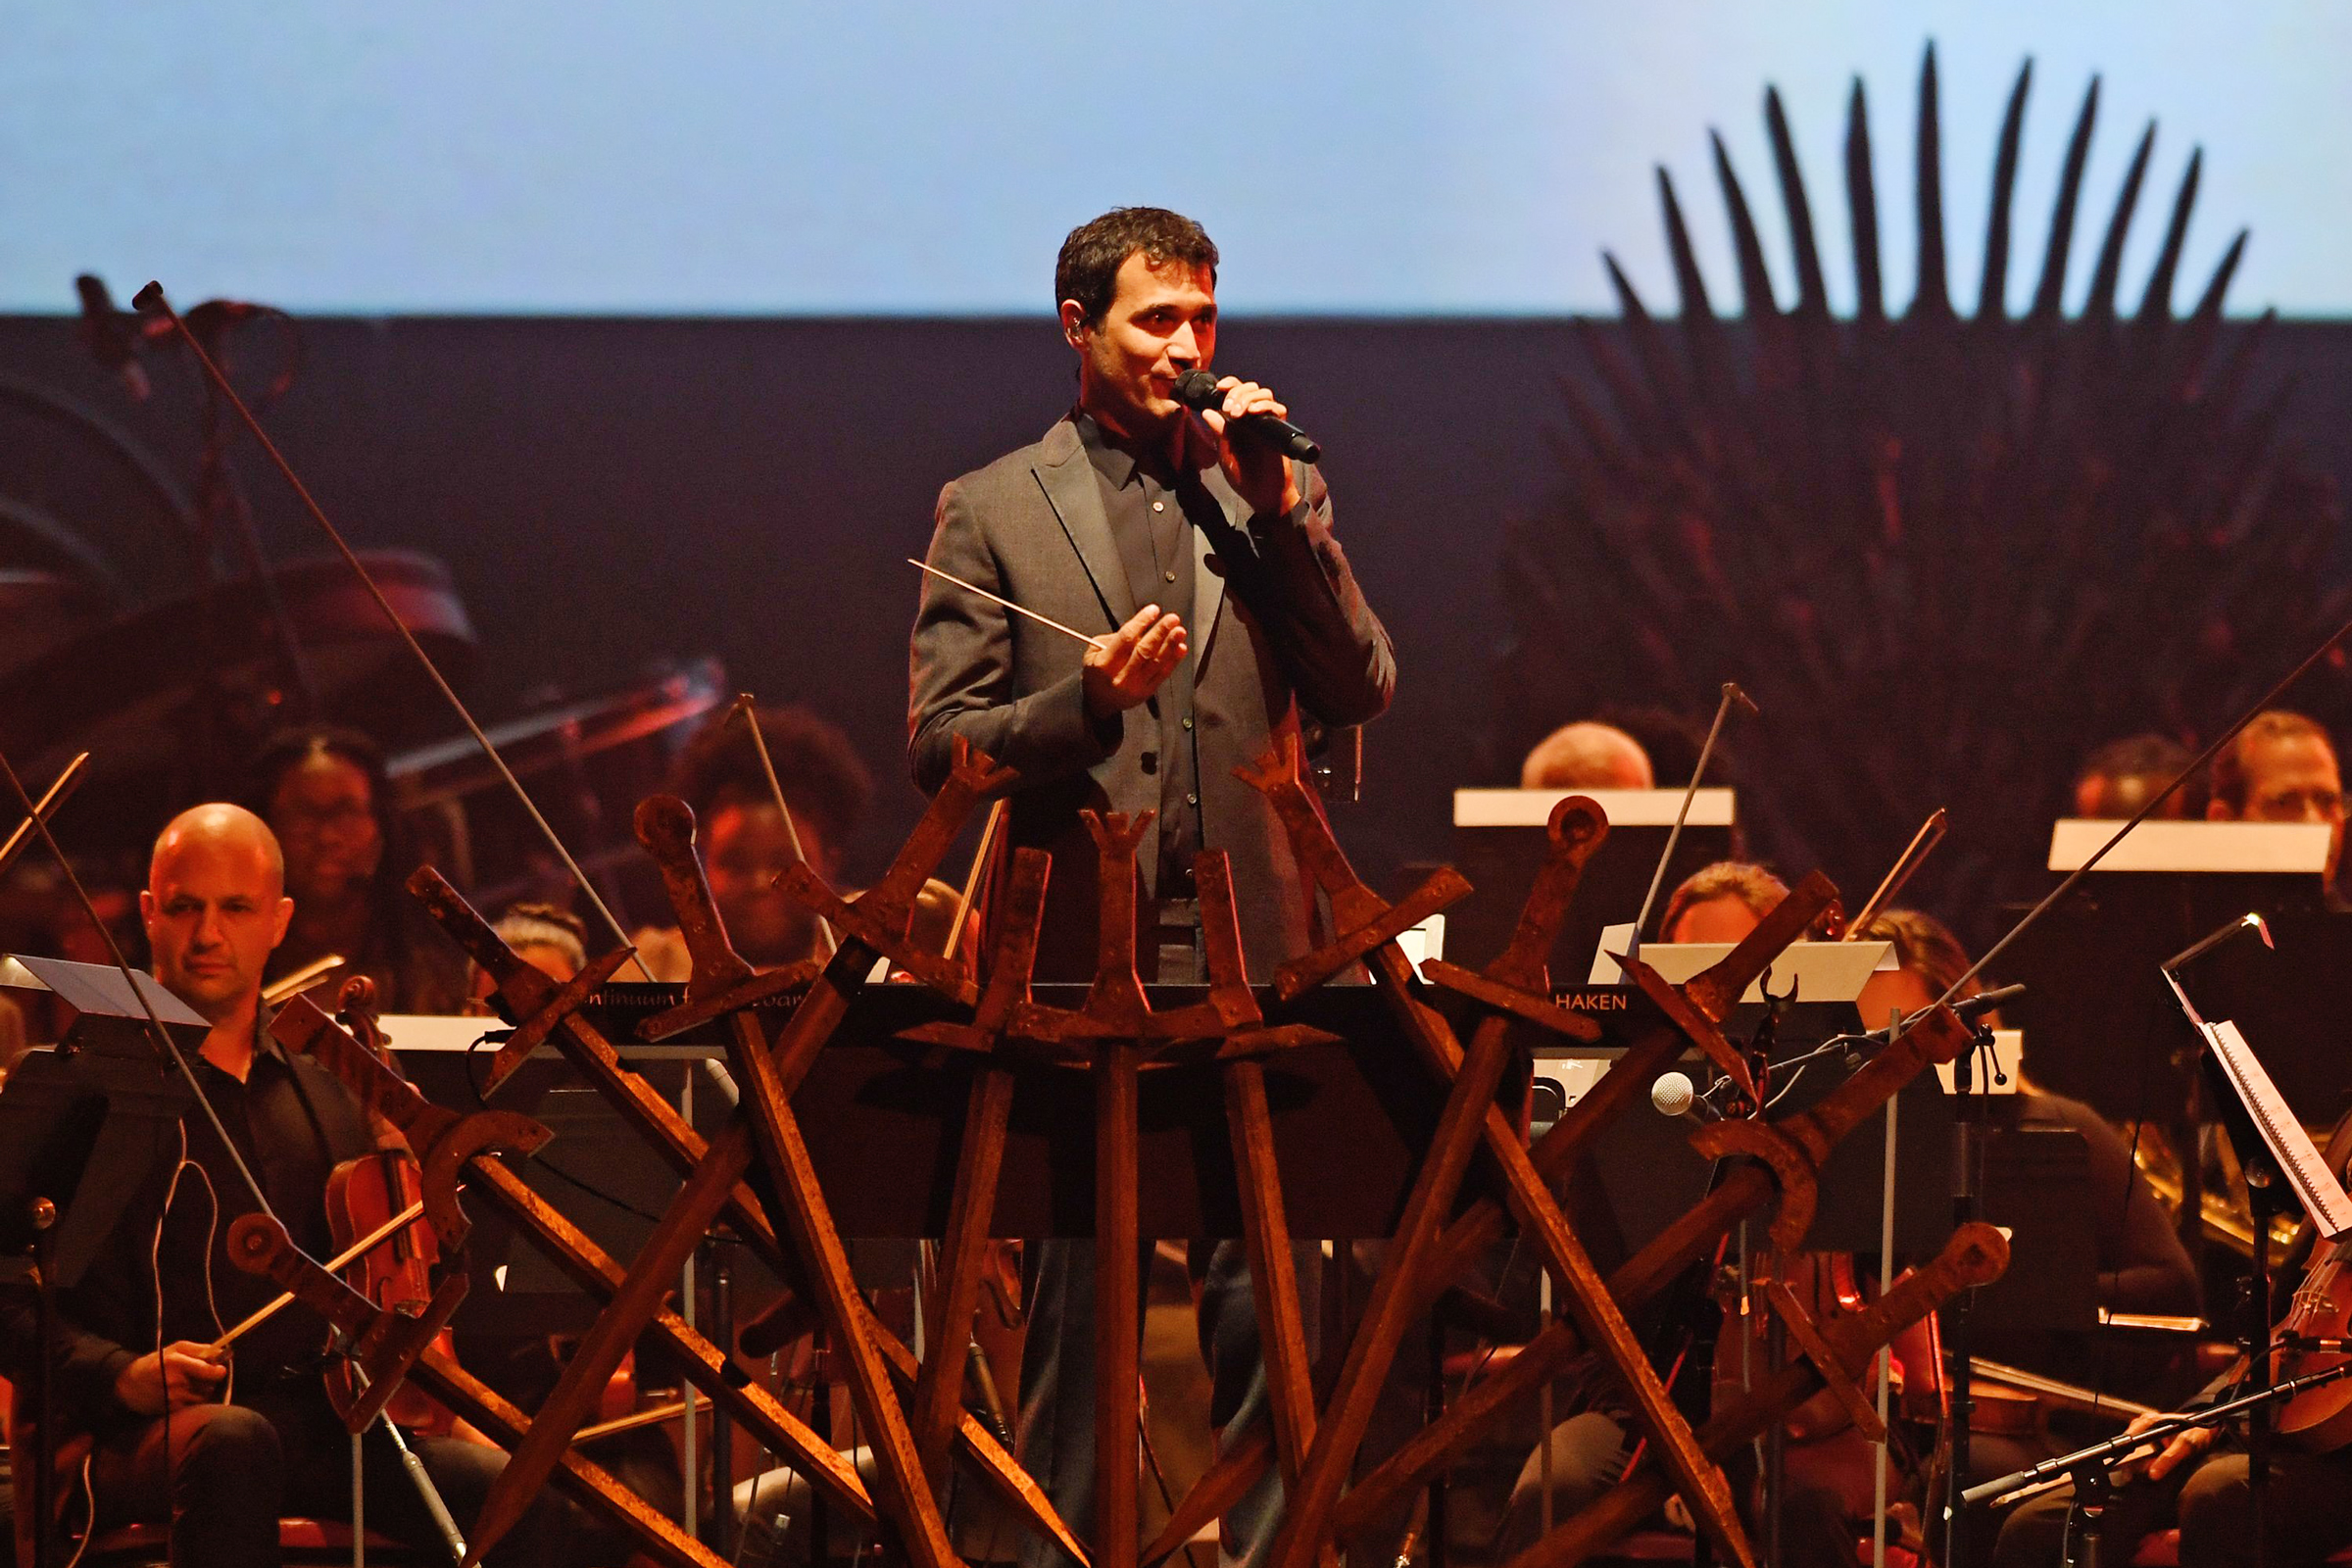 Game of Thrones' Live Concert Experience Returning for Fall Tour